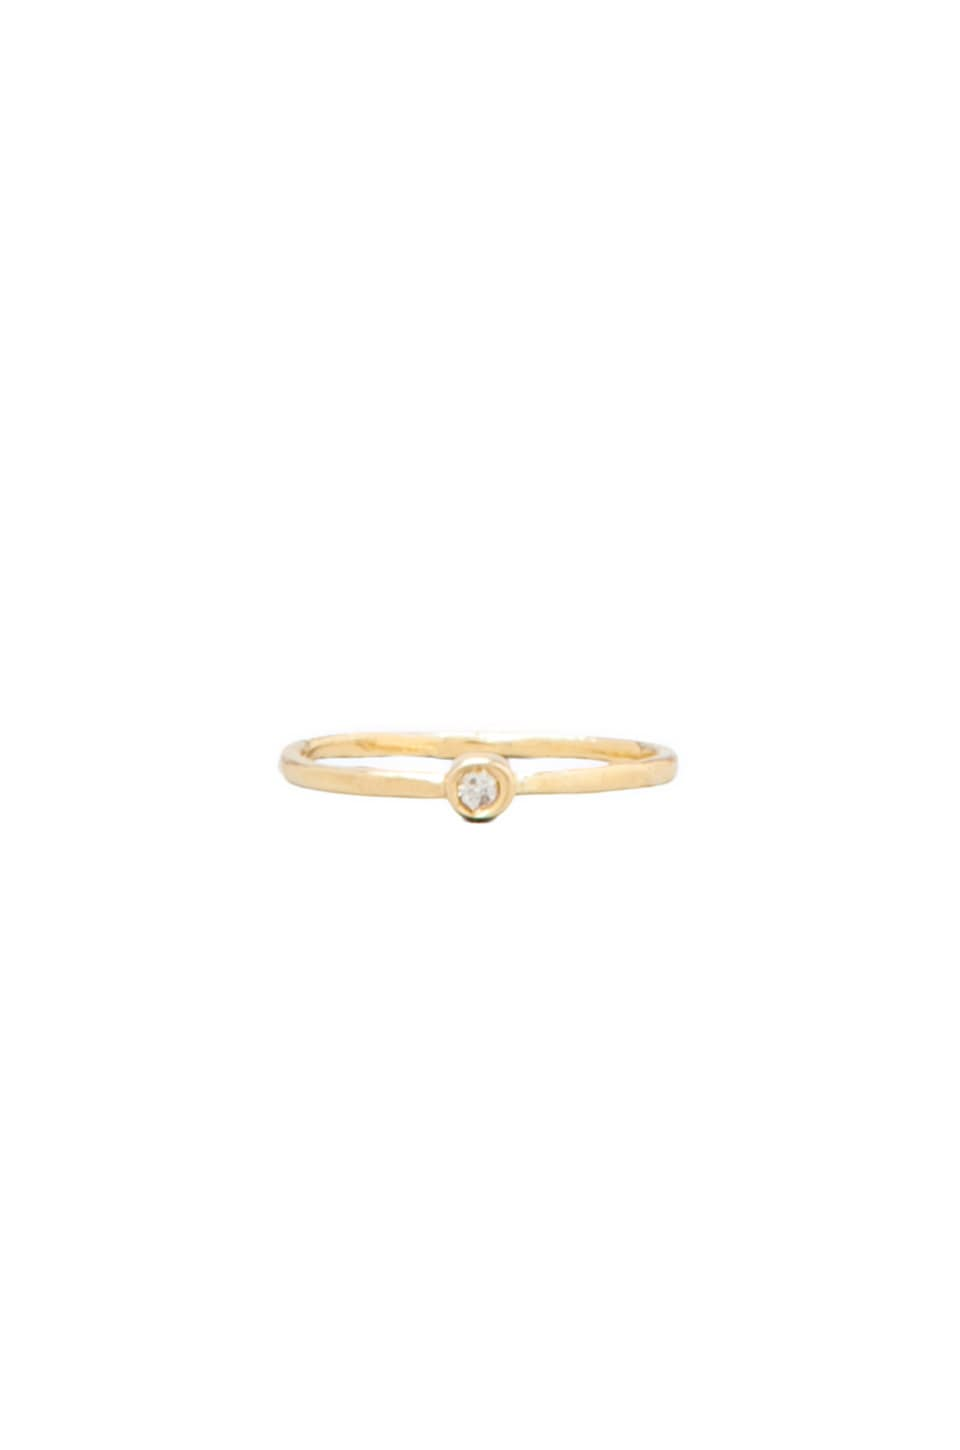 Jacquie Aiche Small Diamond Waif Ring in Gold